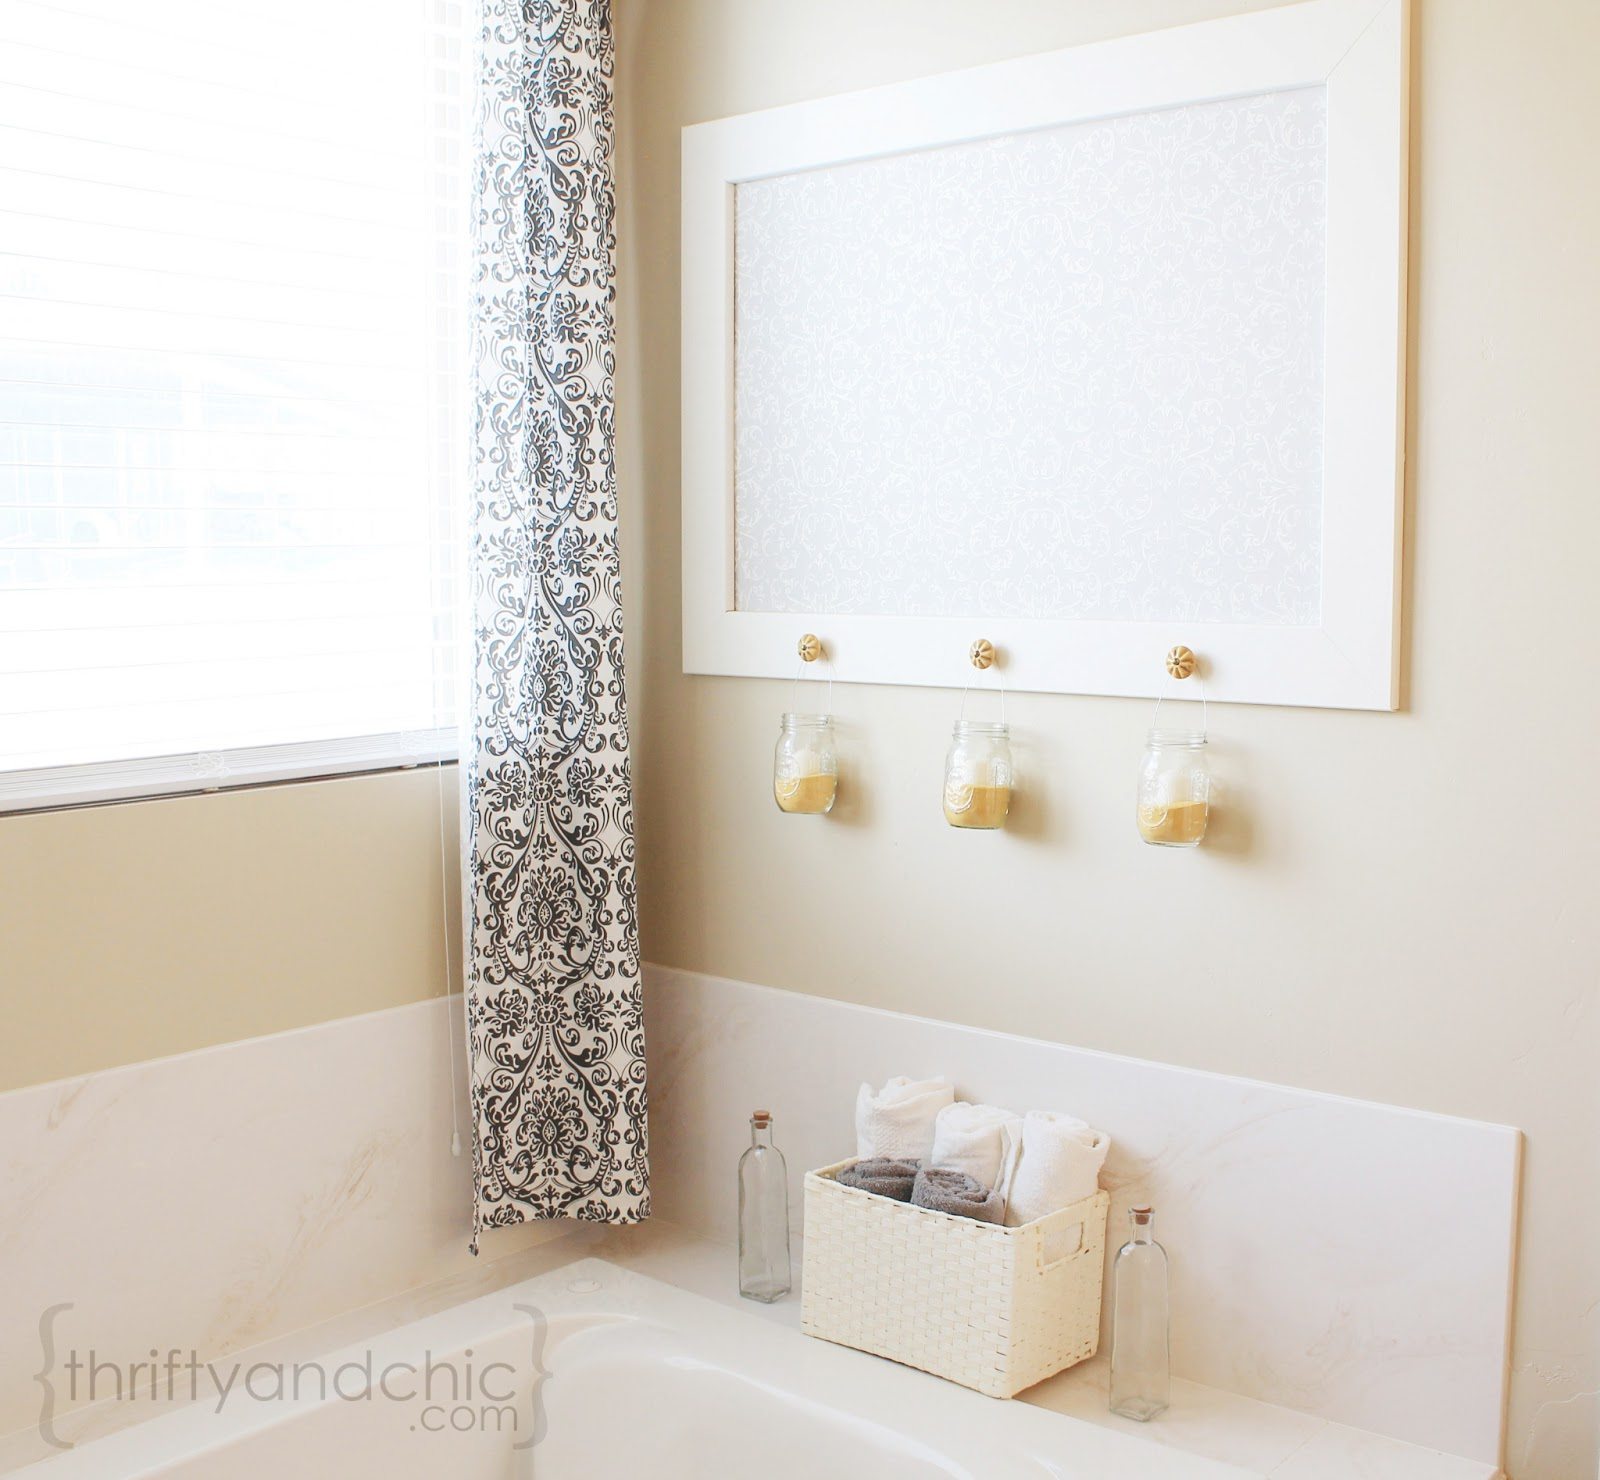 Thrifty Blogs On Home Decor: DIY Projects And Home Decor